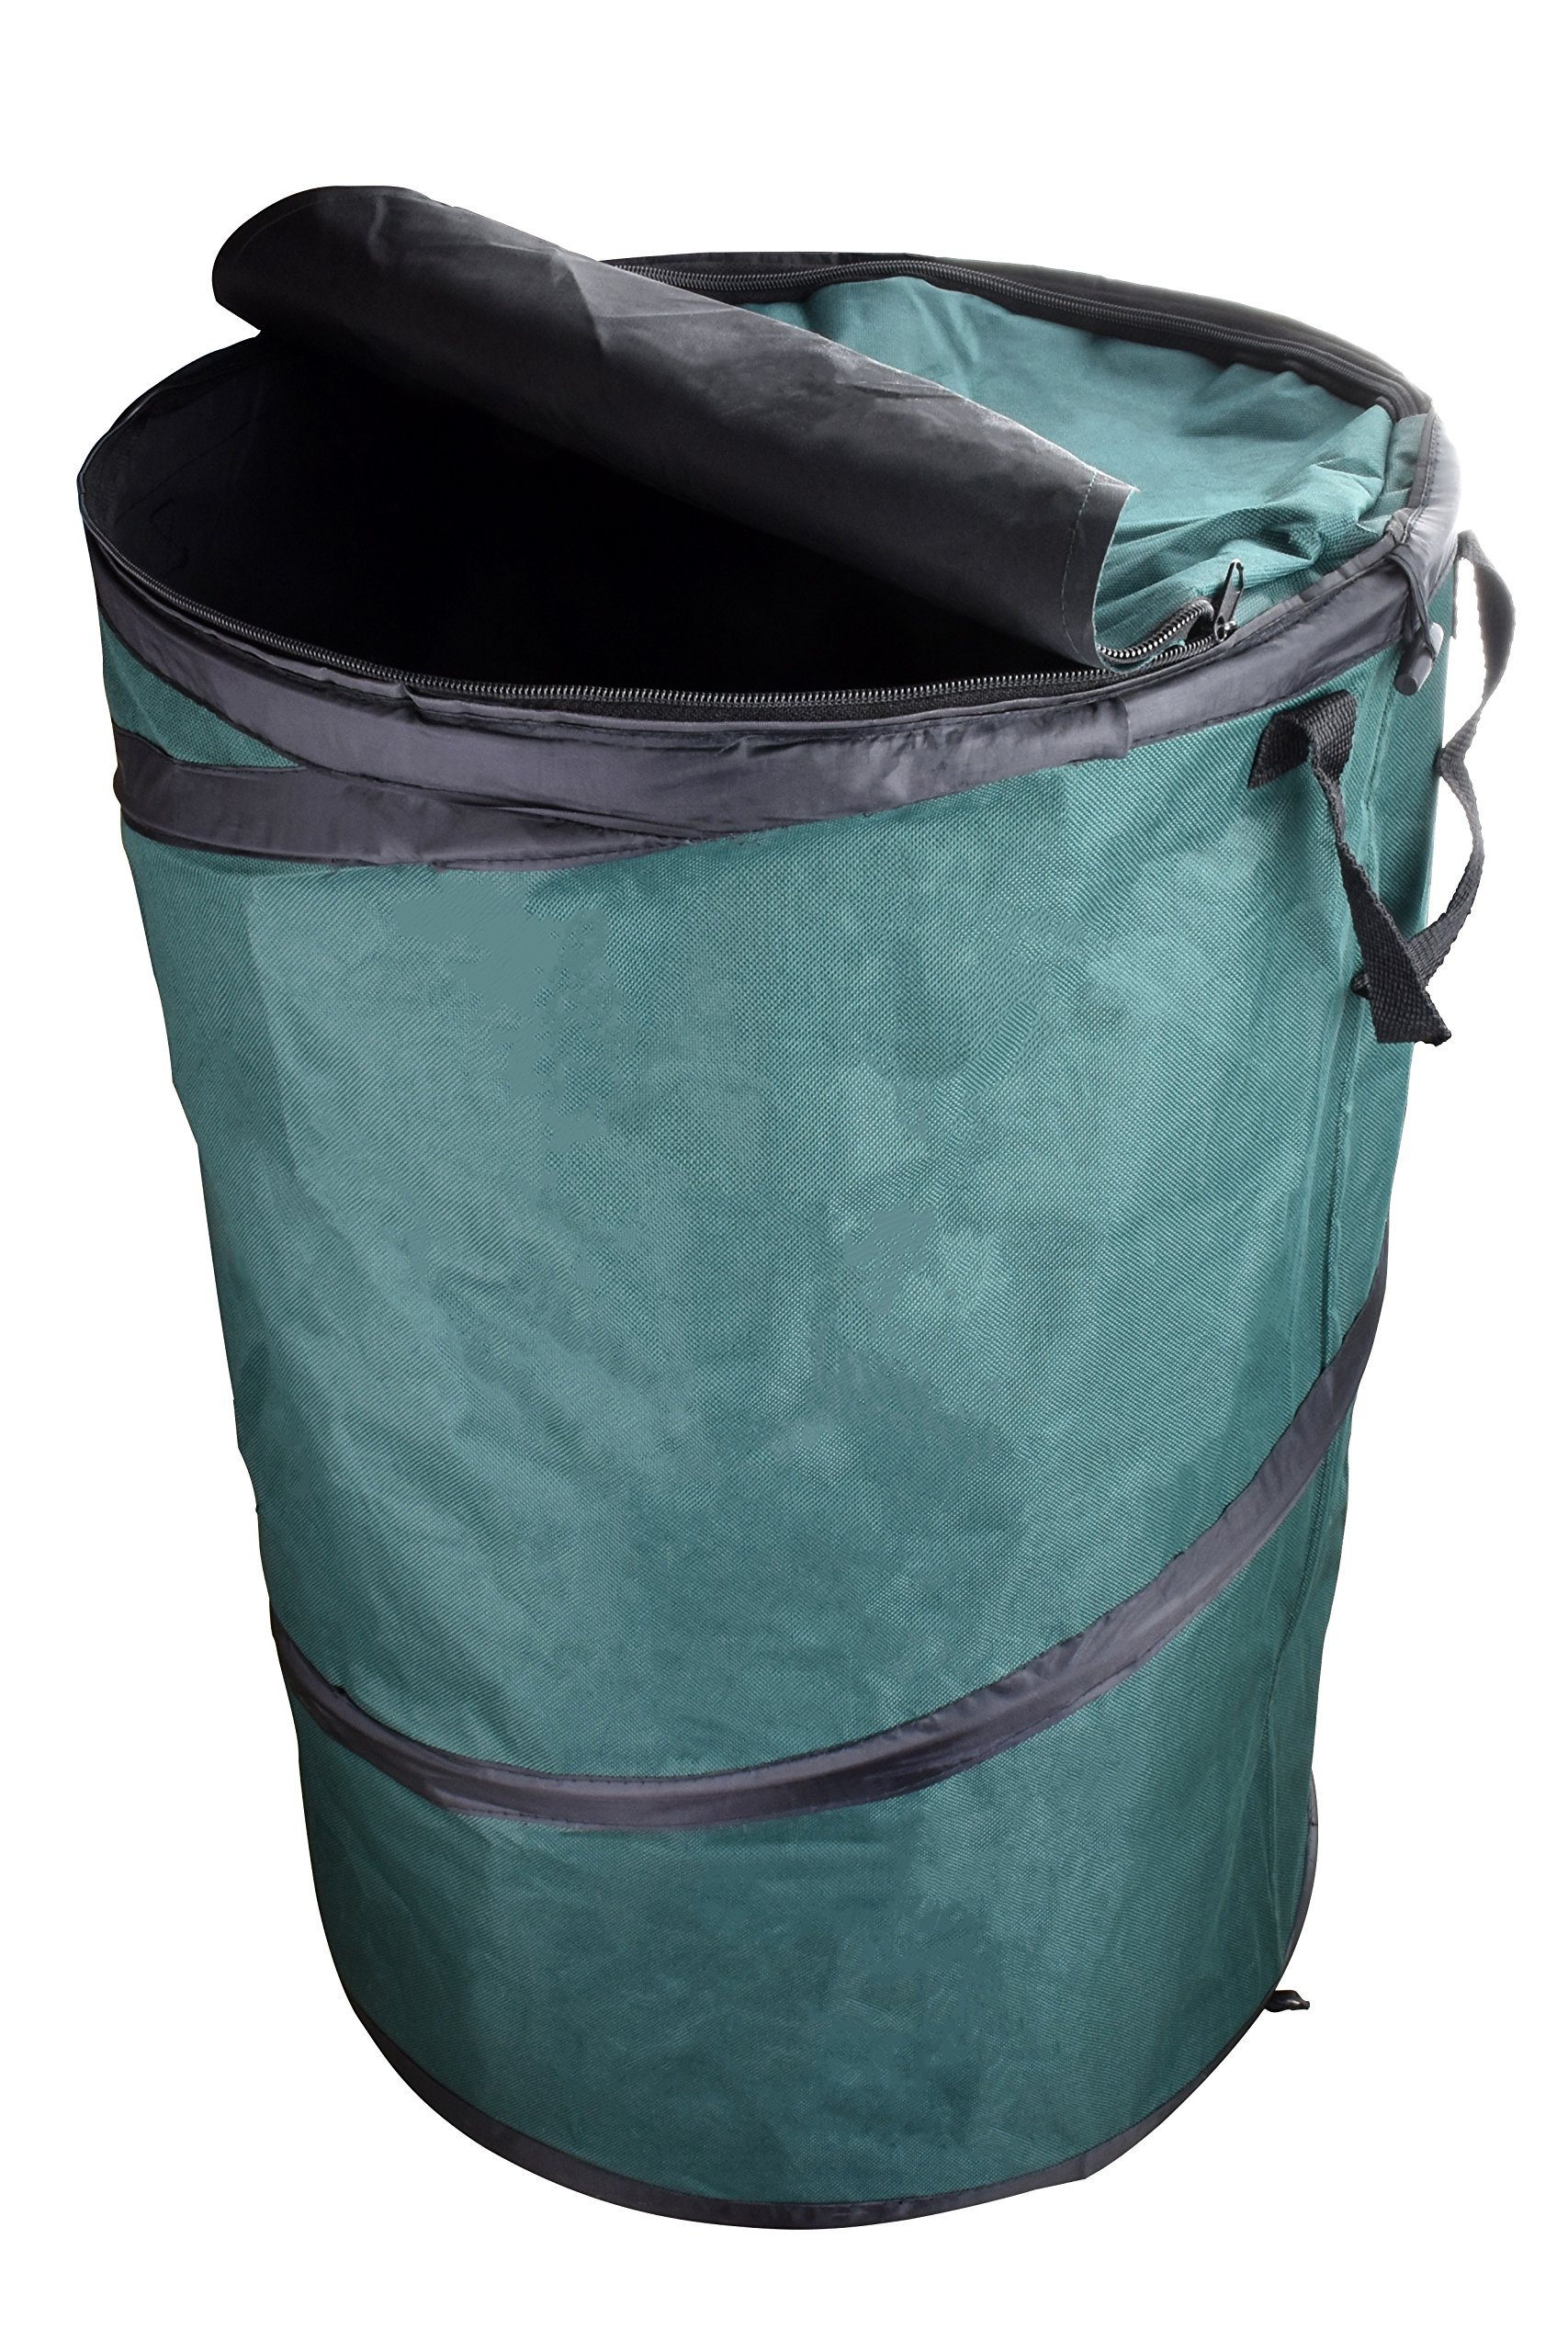 SE GC5002L Extra-Tough Collapsible Leaf Bag with Zippered Lid, Green